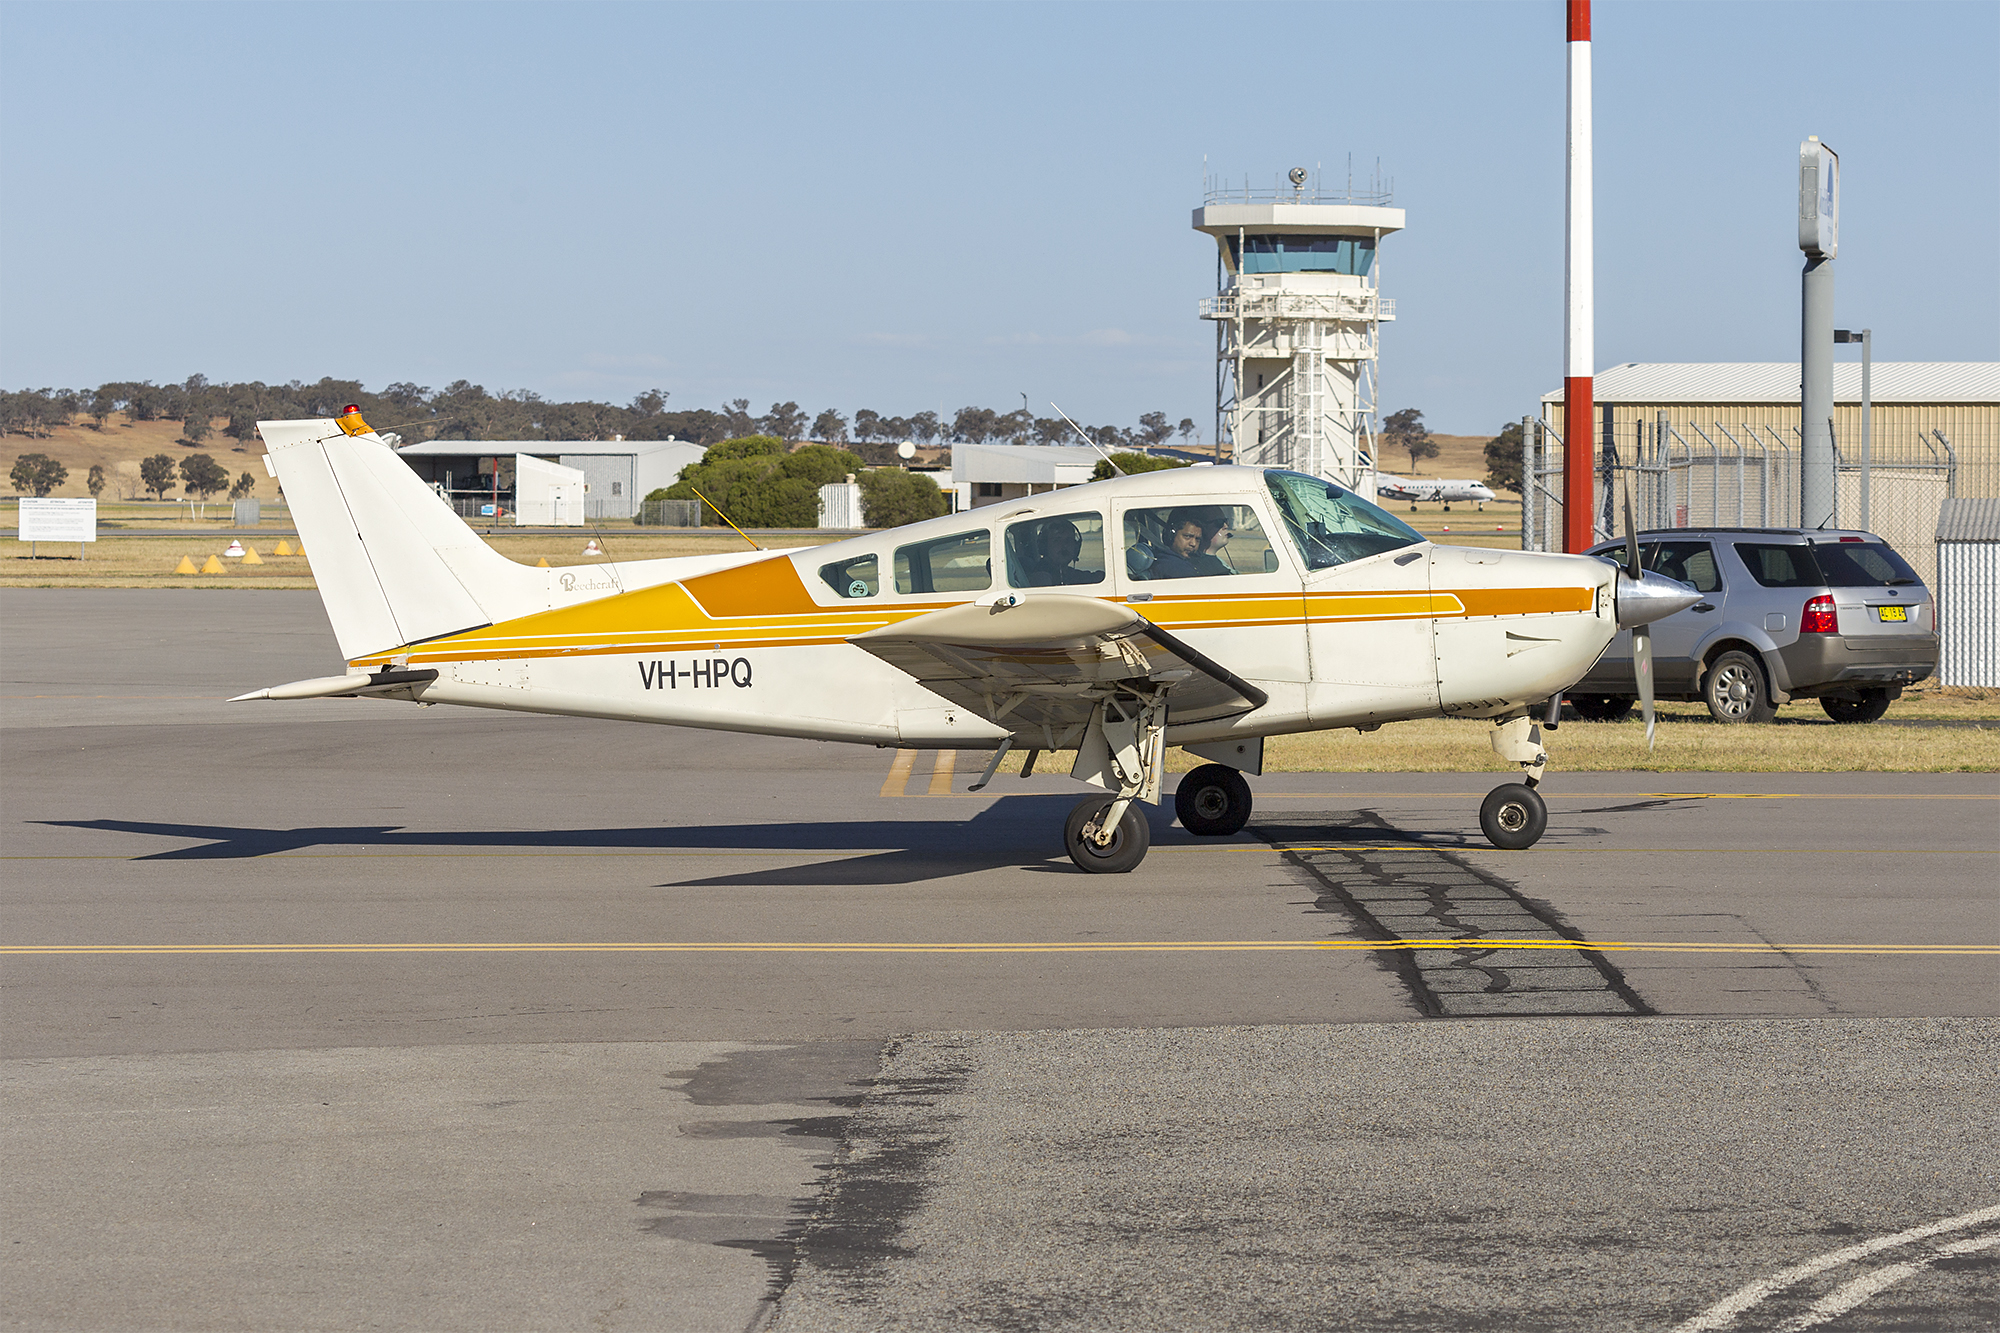 hight resolution of file beechcraft sierra c24r vh hpq at wagga wagga airport 1 jpg